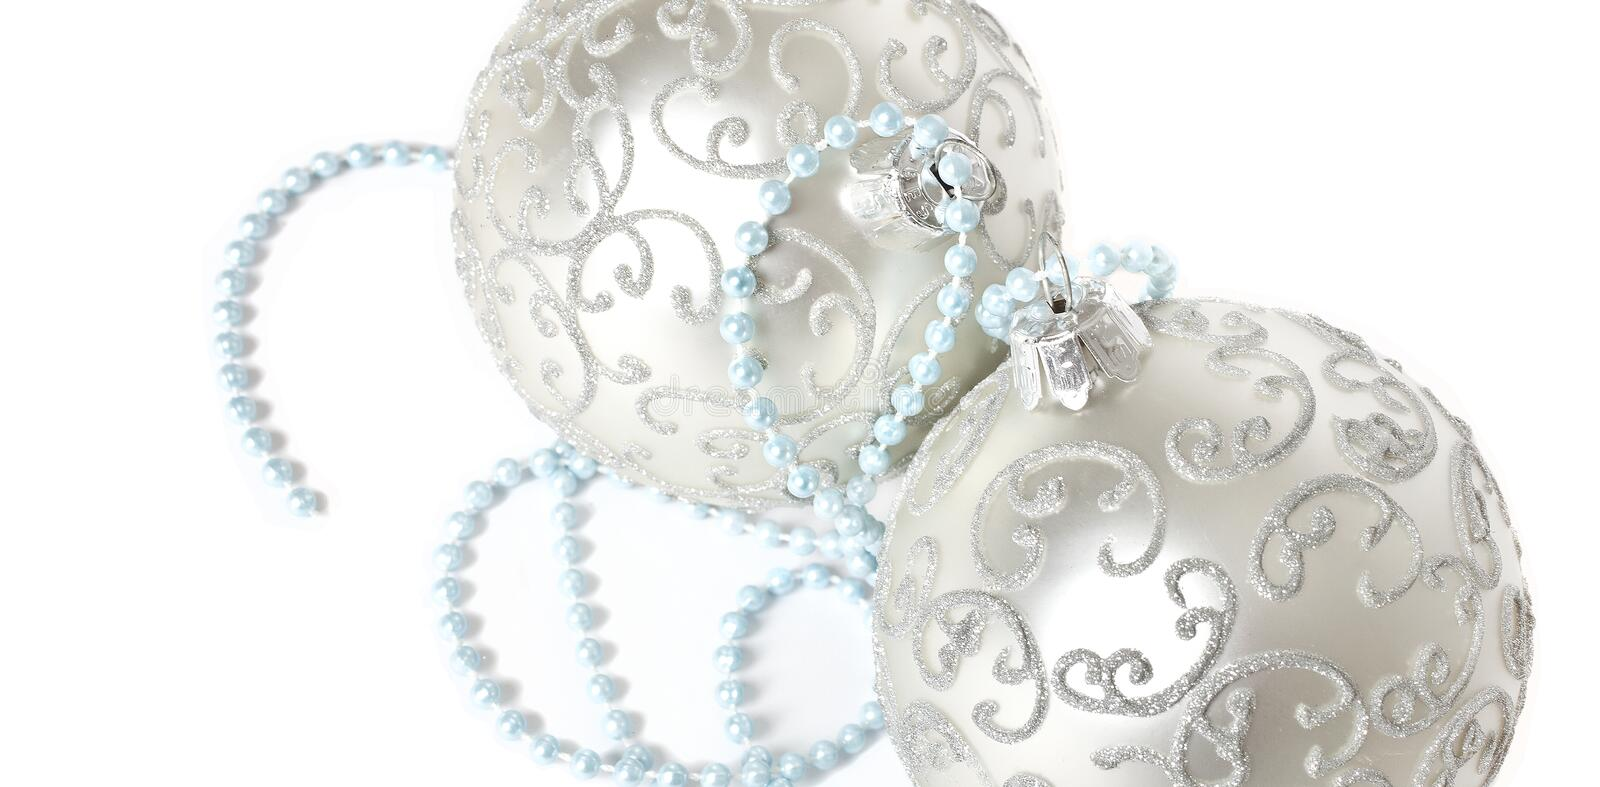 Christmas ornaments. Silver christmas ornaments with light blue pearls royalty free stock photos